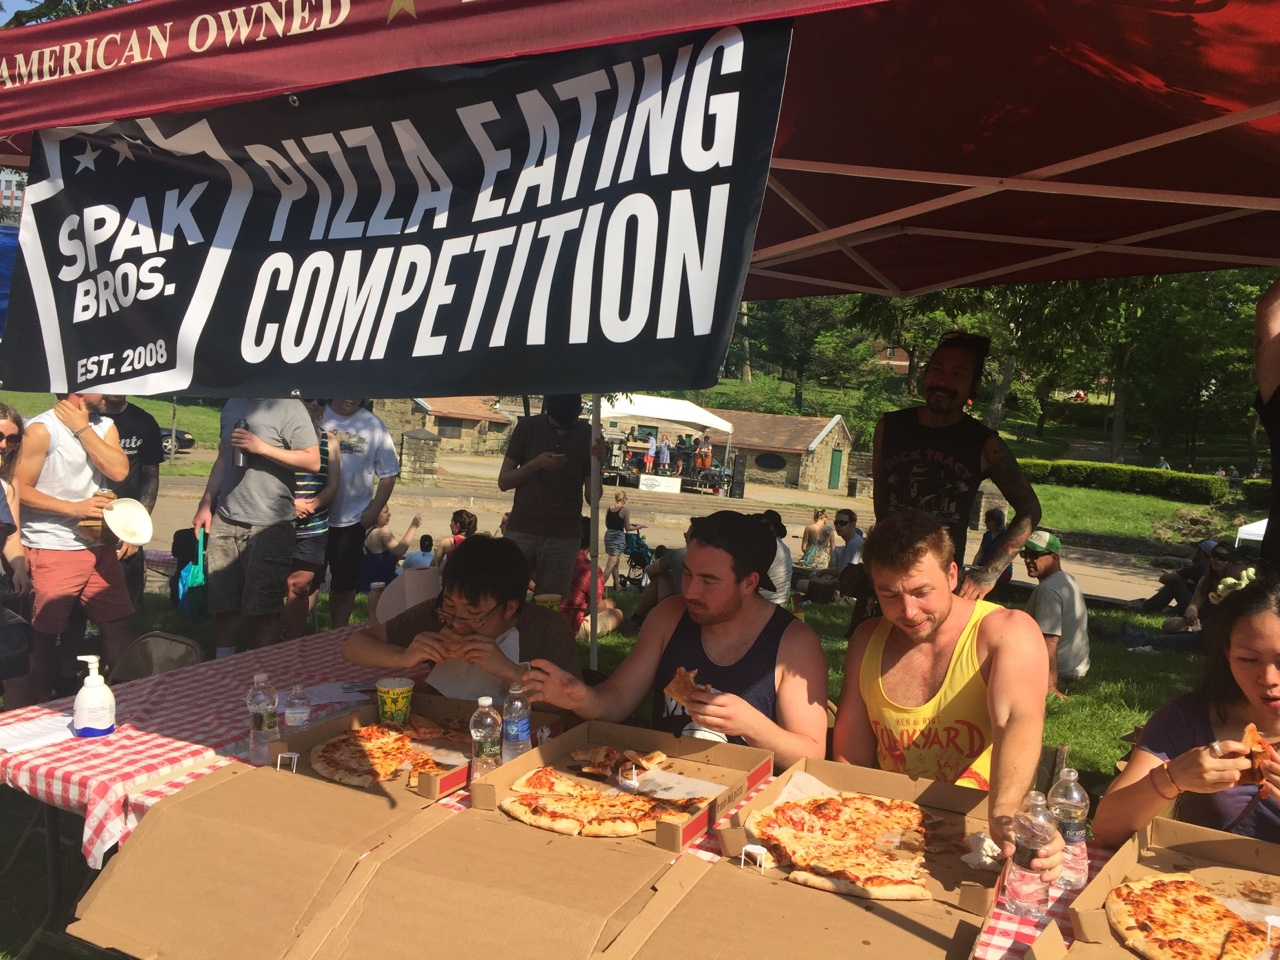 The Spak Bros. pizza eating competition got too real.